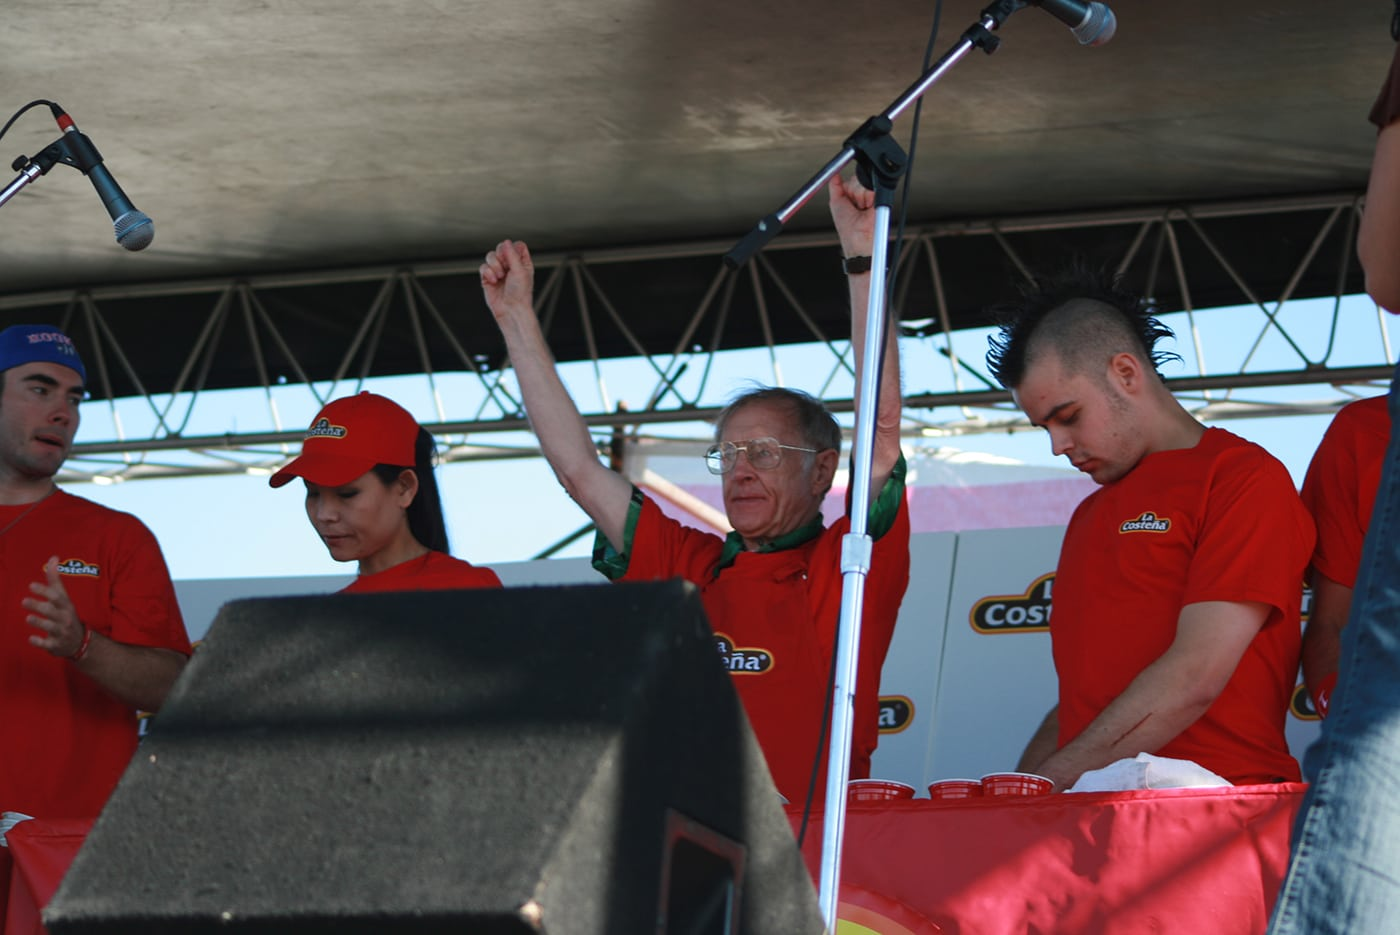 """Rich LeFevre eats at the La Costeña """"Feel the Heat"""" Jalapeño Eating Challenge - jalapeno eating contest in Chicago."""